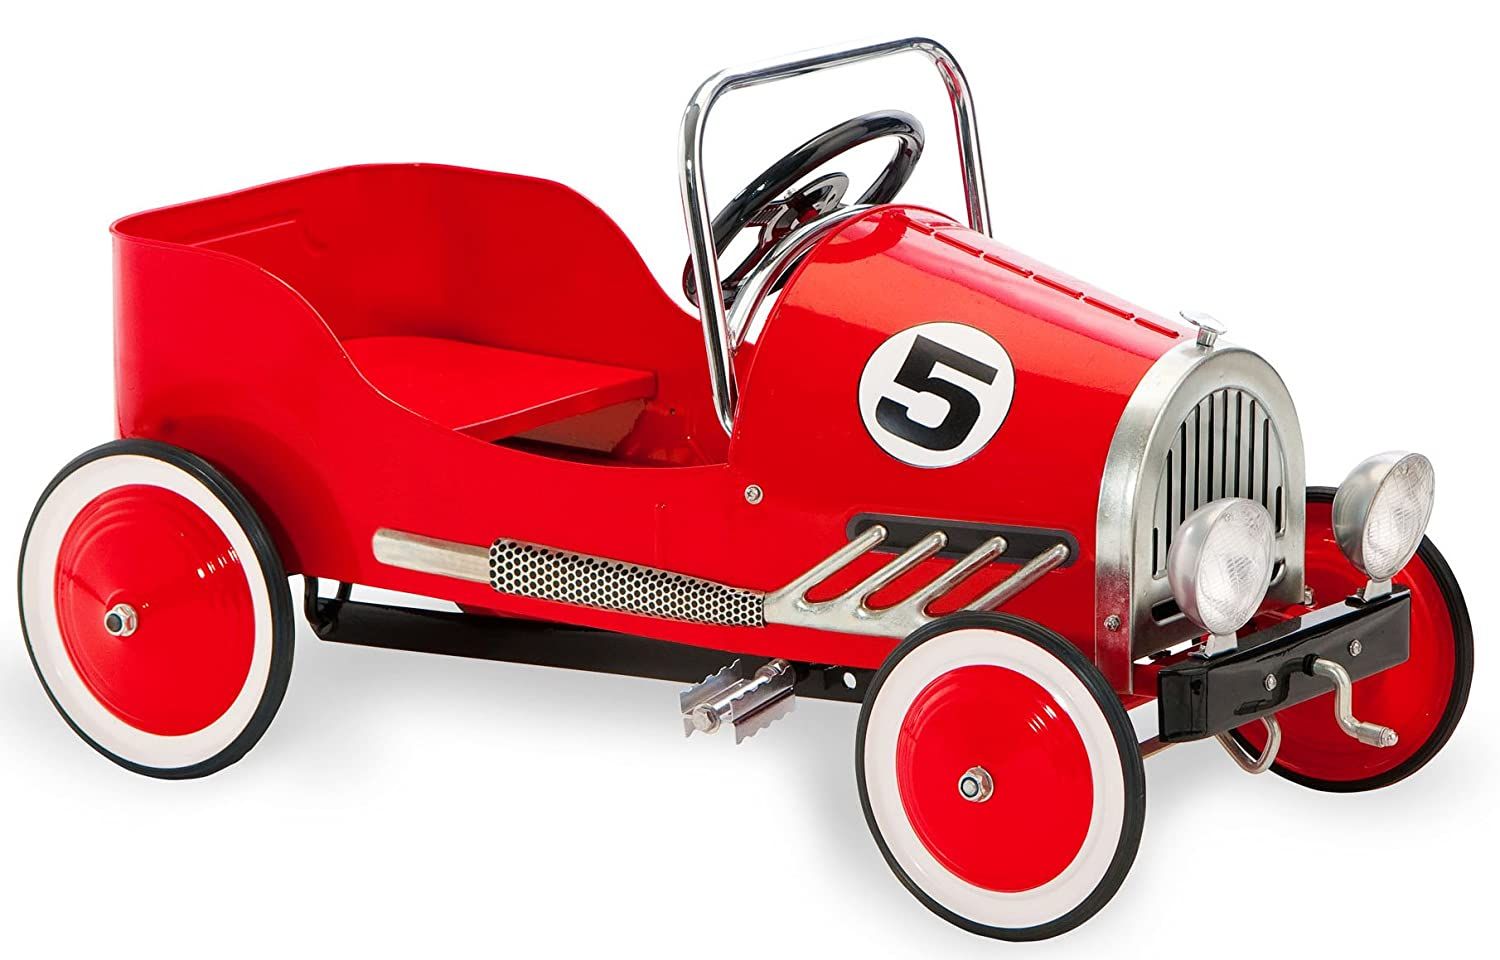 Amazon.com: Morgan Cycle Retro Style Pedal Car, Red: Toys & Games